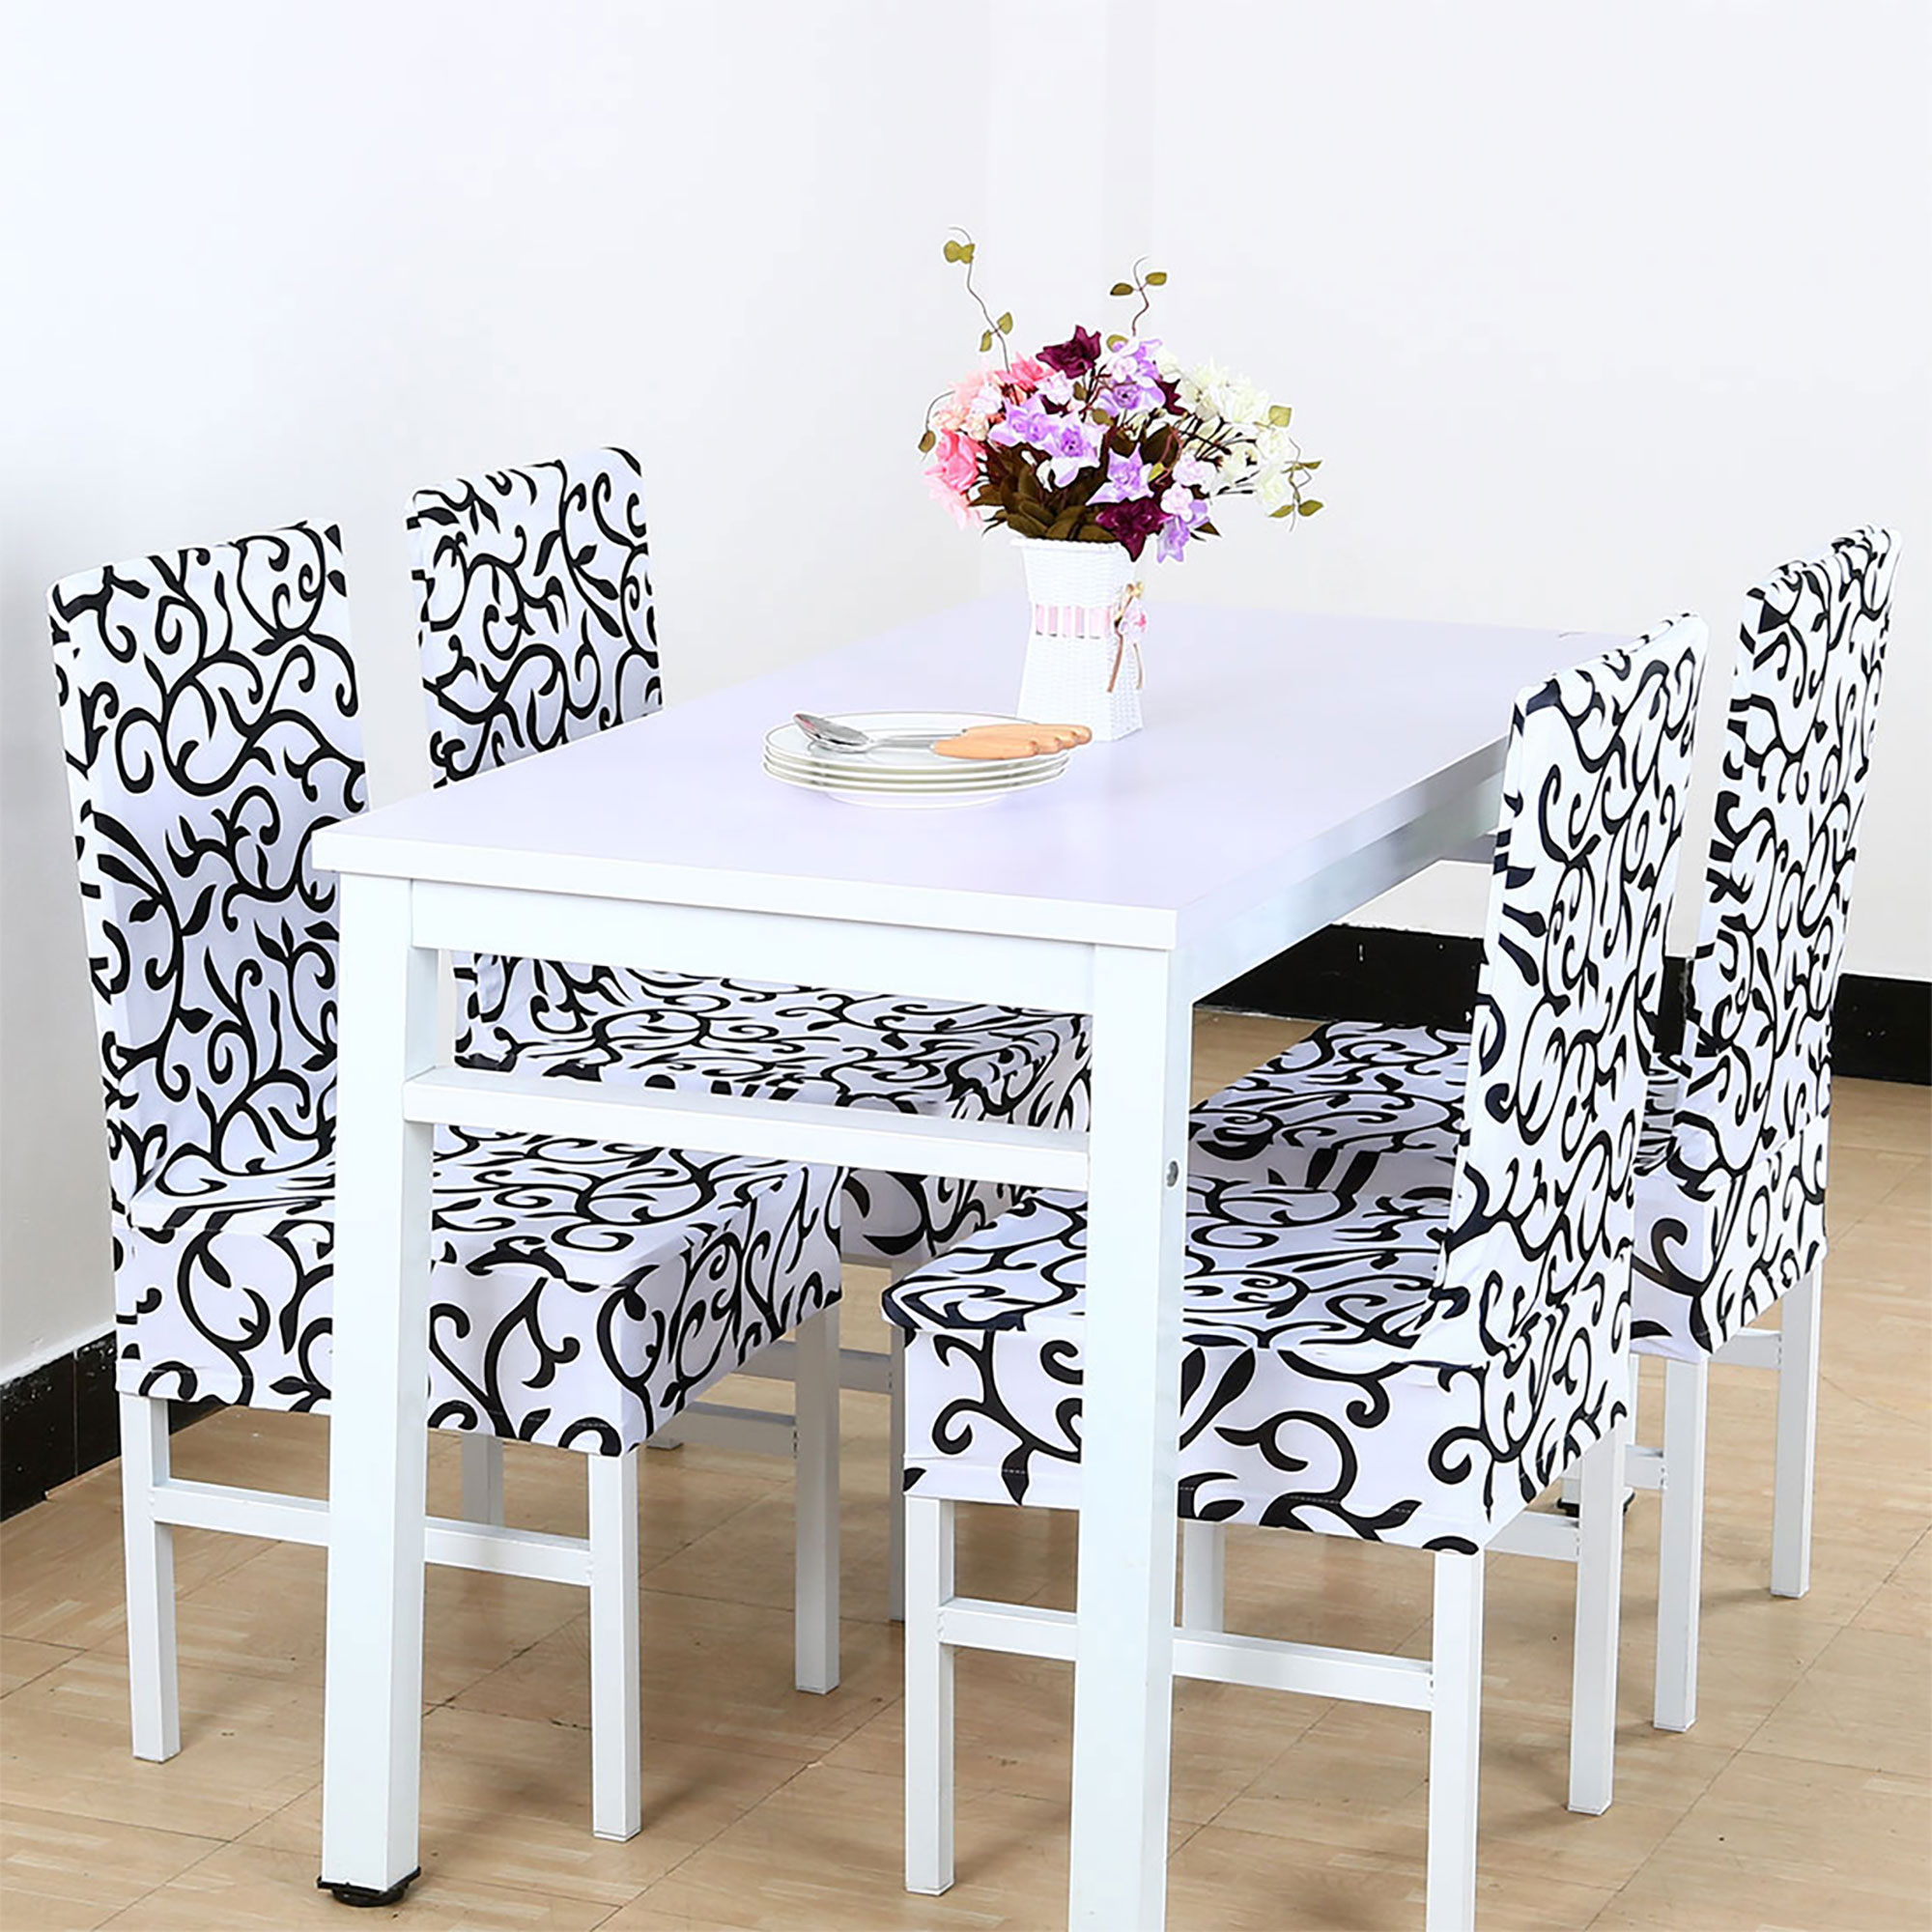 Stretch Dining Room Chair Cover For Shorty Parson Chair White Bedding For Home Walmart Com Walmart Com